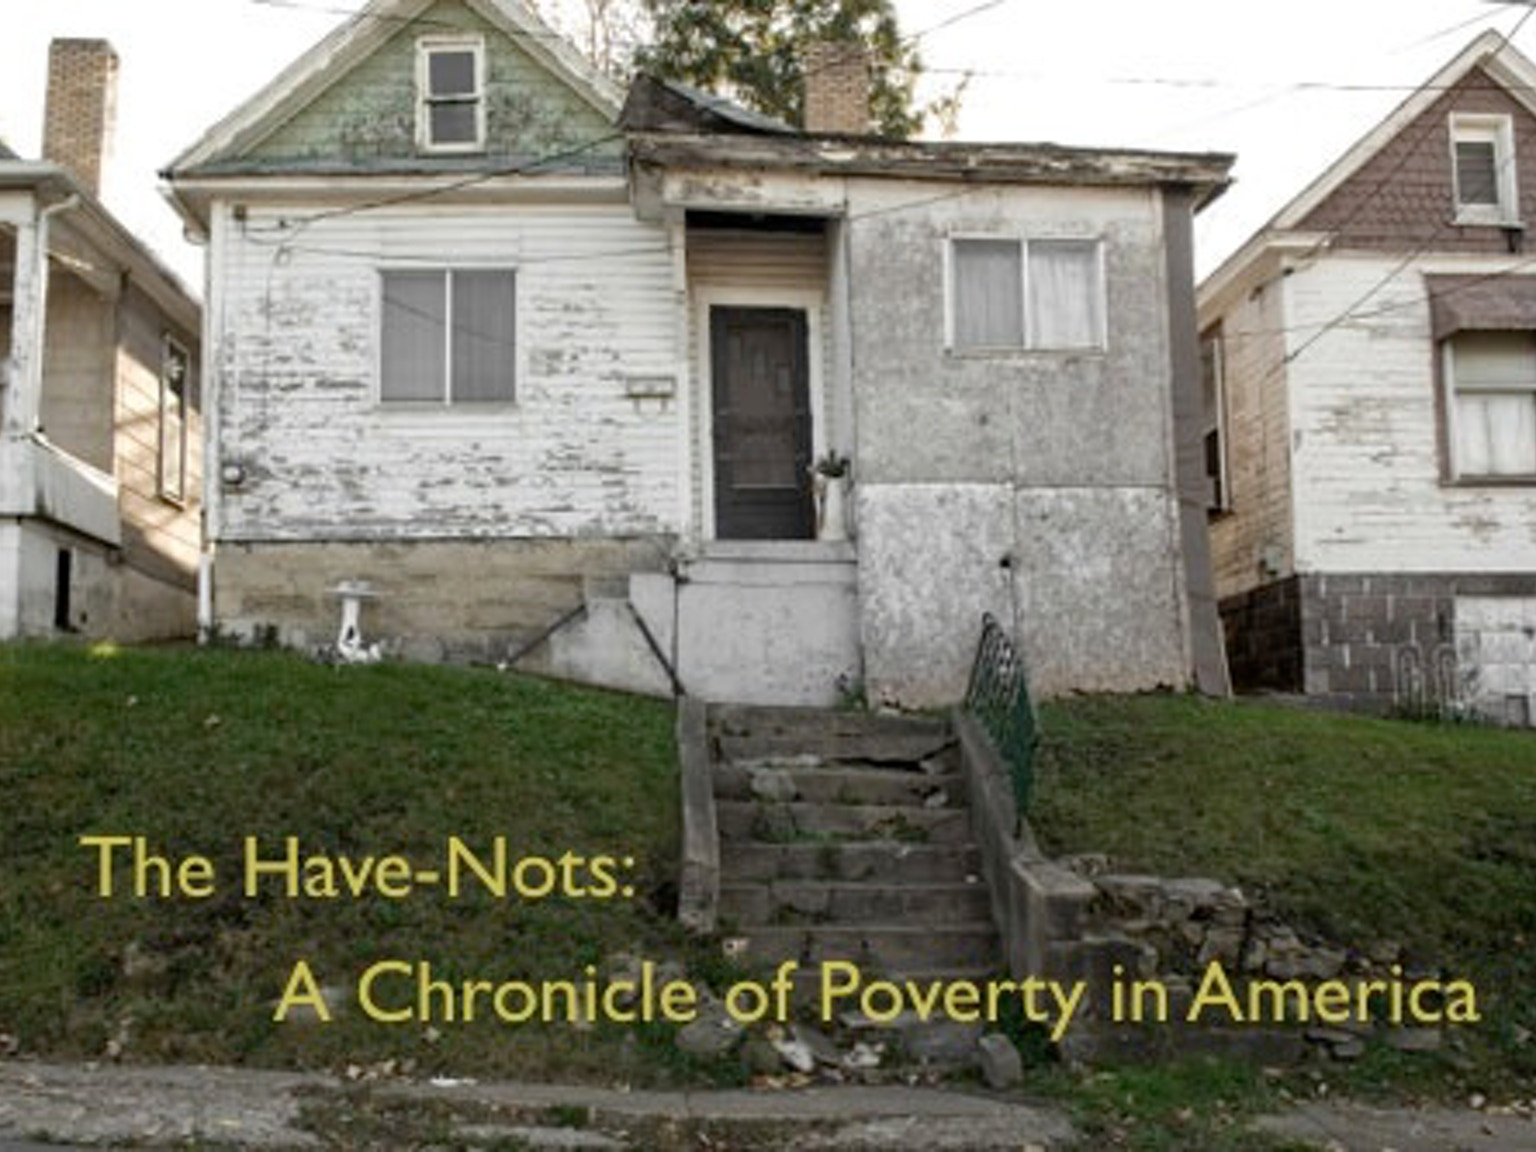 essays on poverty in america poverty in america essays